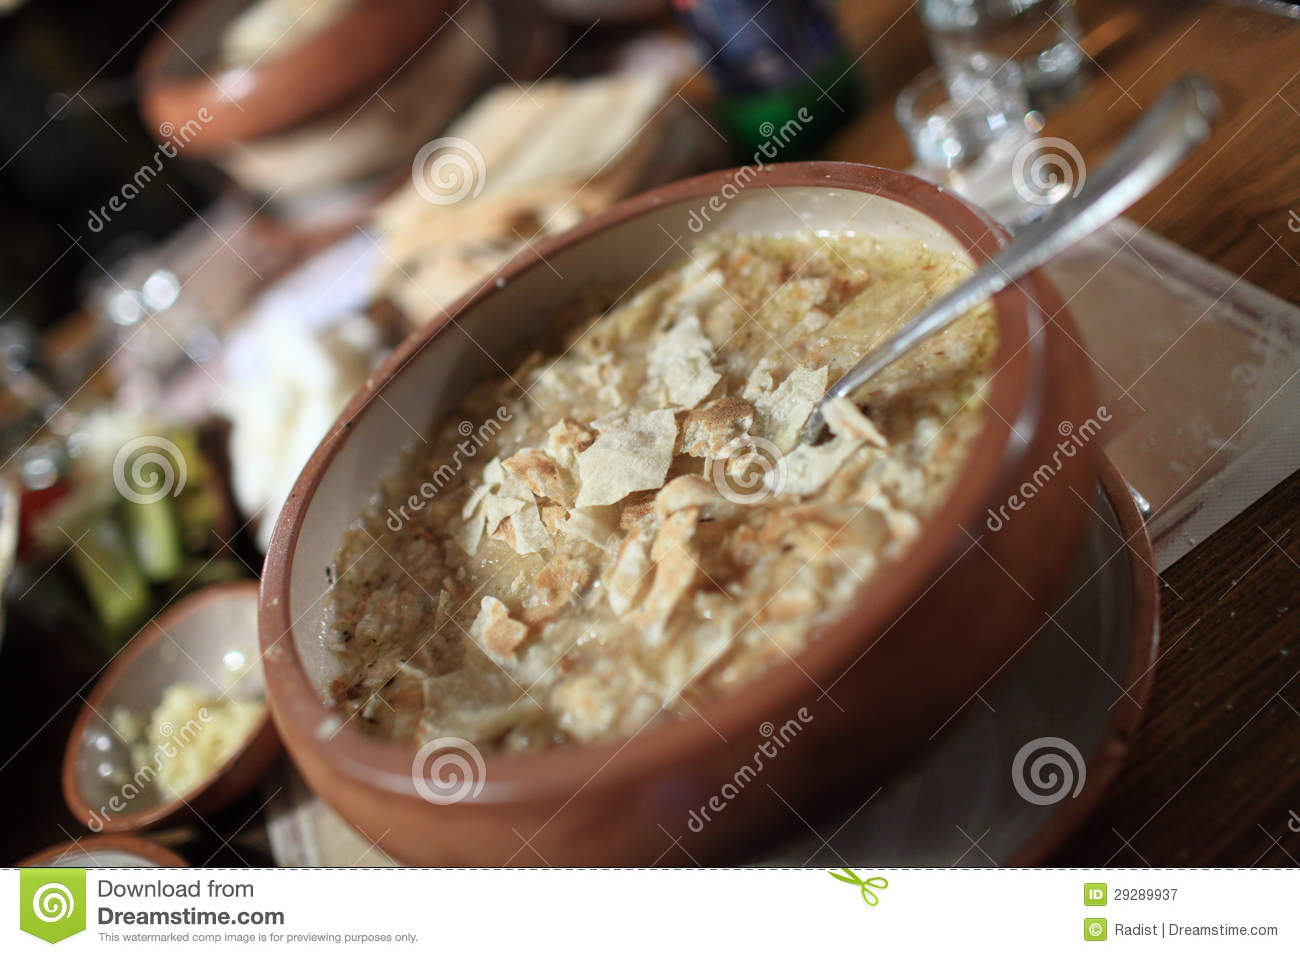 Image result for no copyright khash